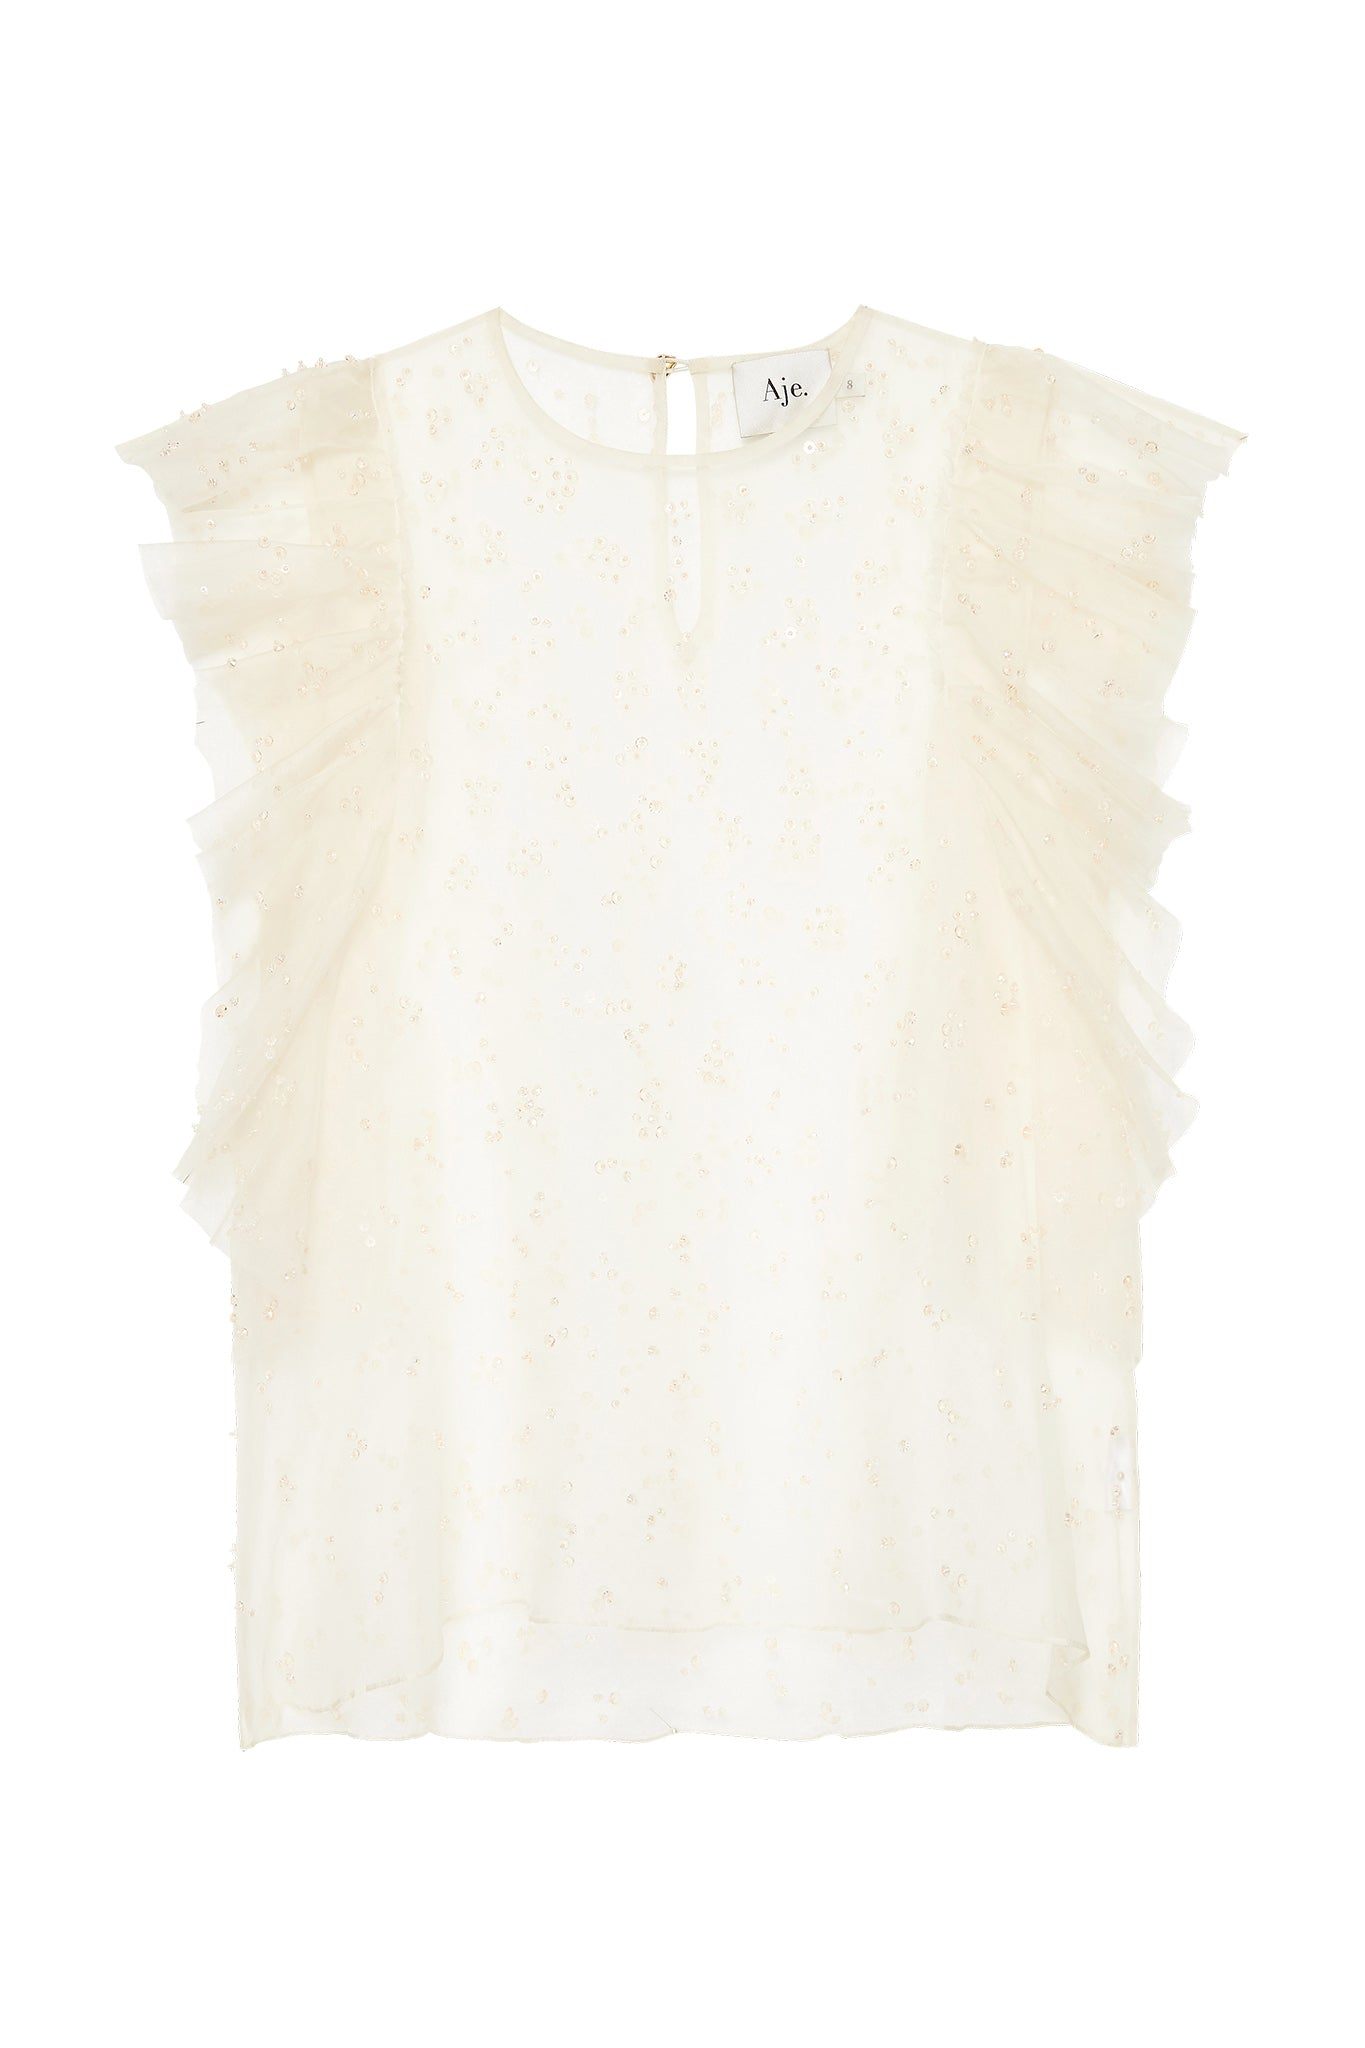 Eucalypt Embellished Frill Top Product View